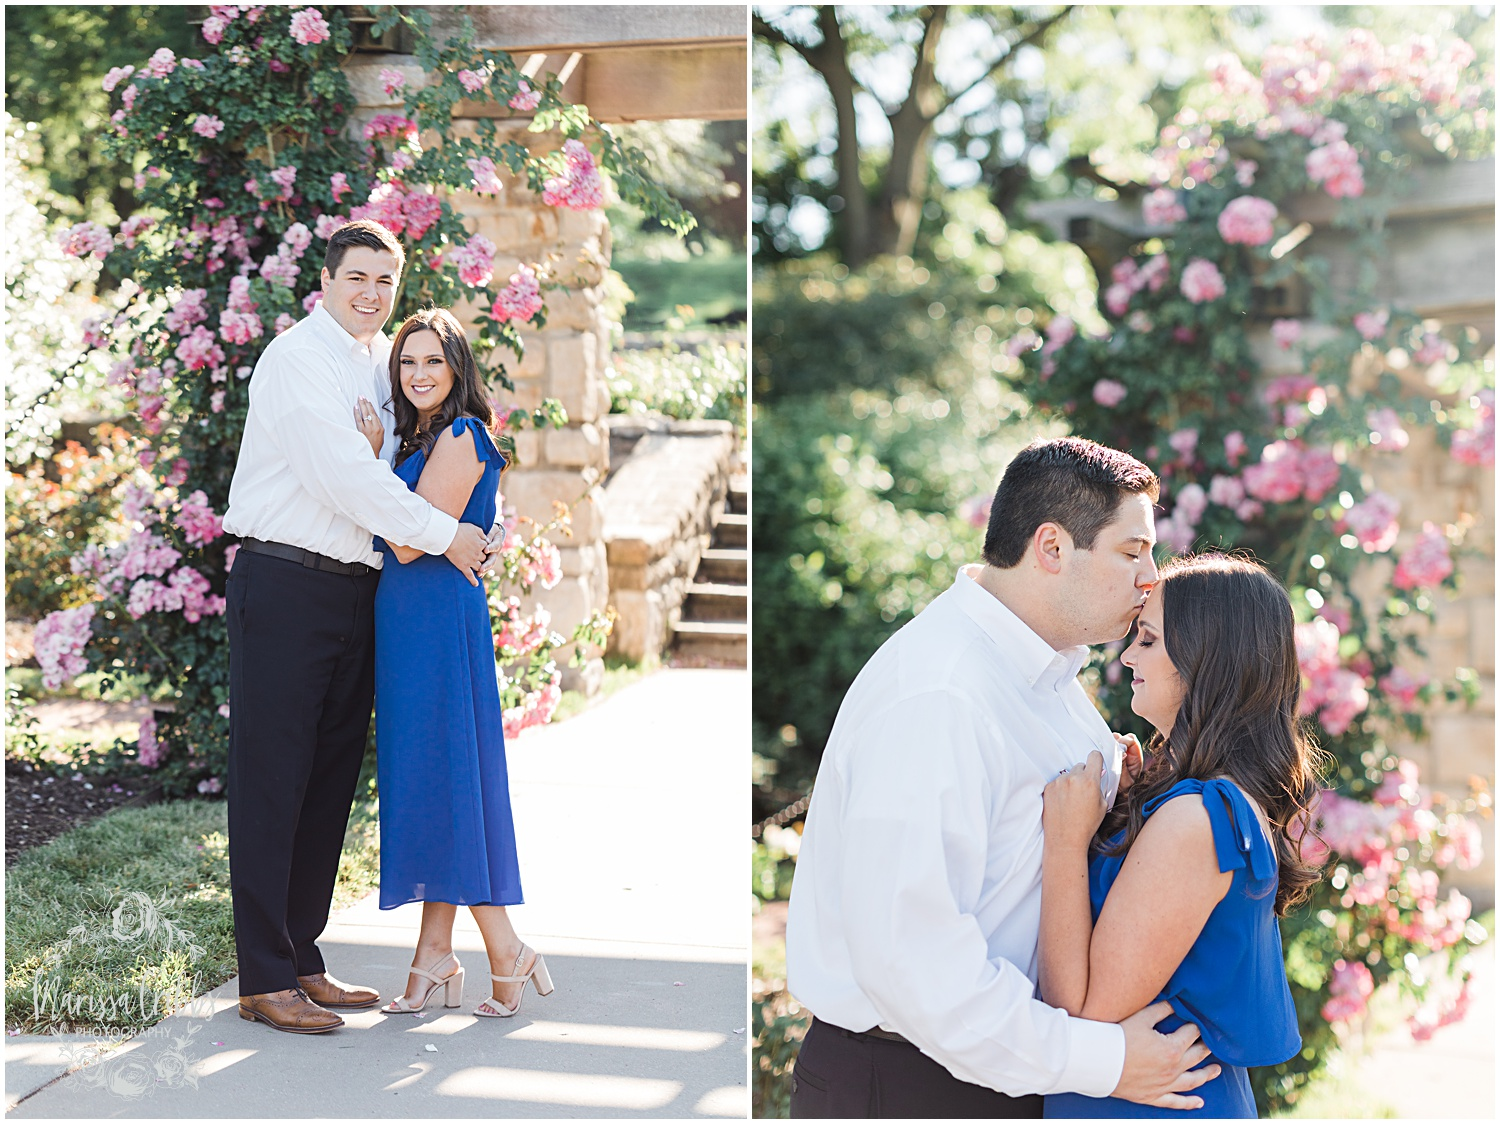 MORGAN & KEVIN ENGAGEMENT BLOG | MARISSA CRIBBS PHOTOGRAPHY_8279.jpg